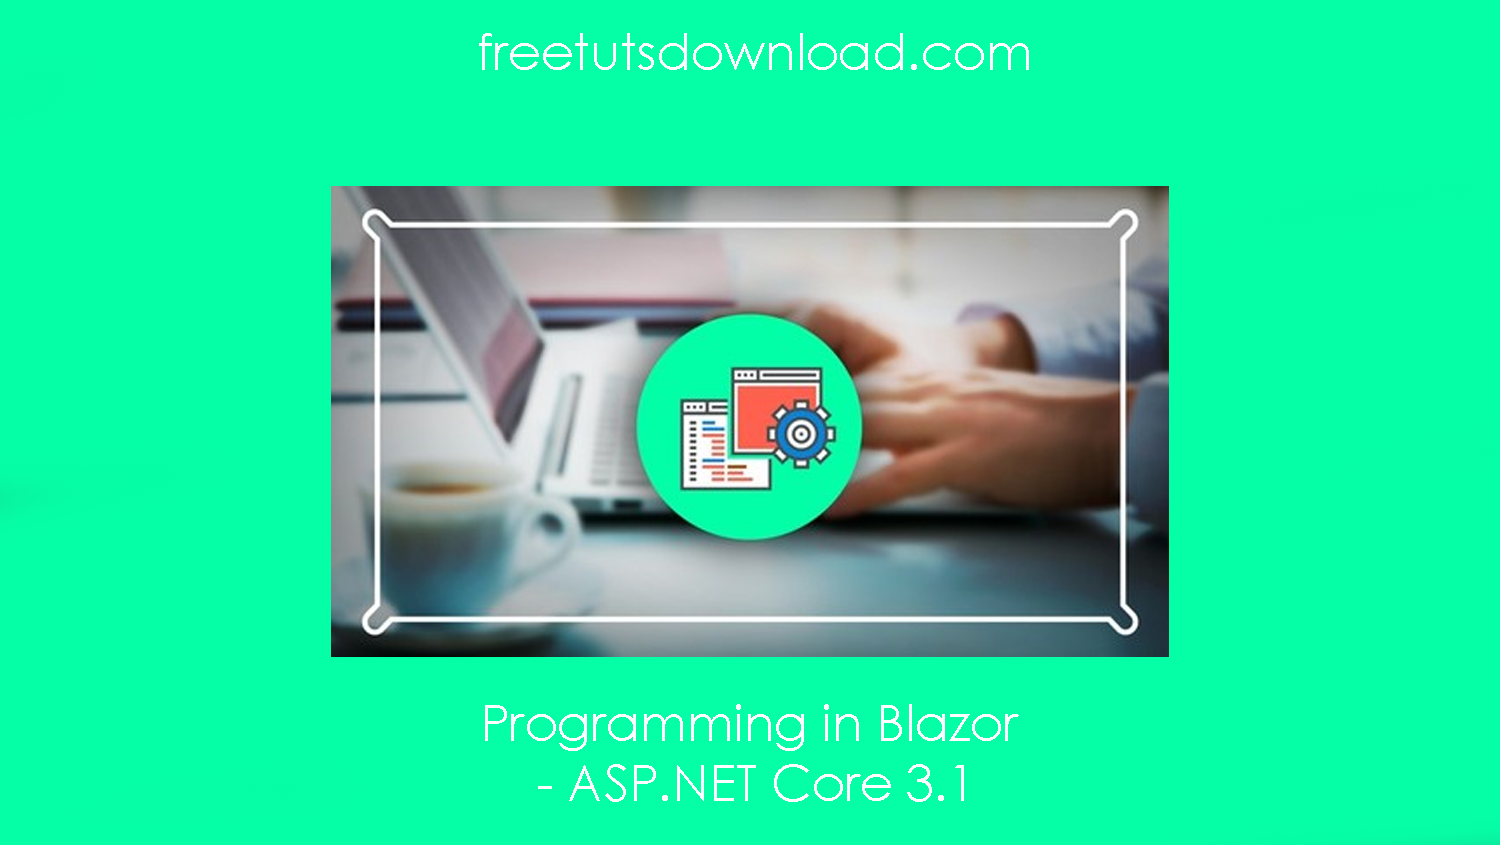 Programming in Blazor - ASP.NET Core 3.1 free download